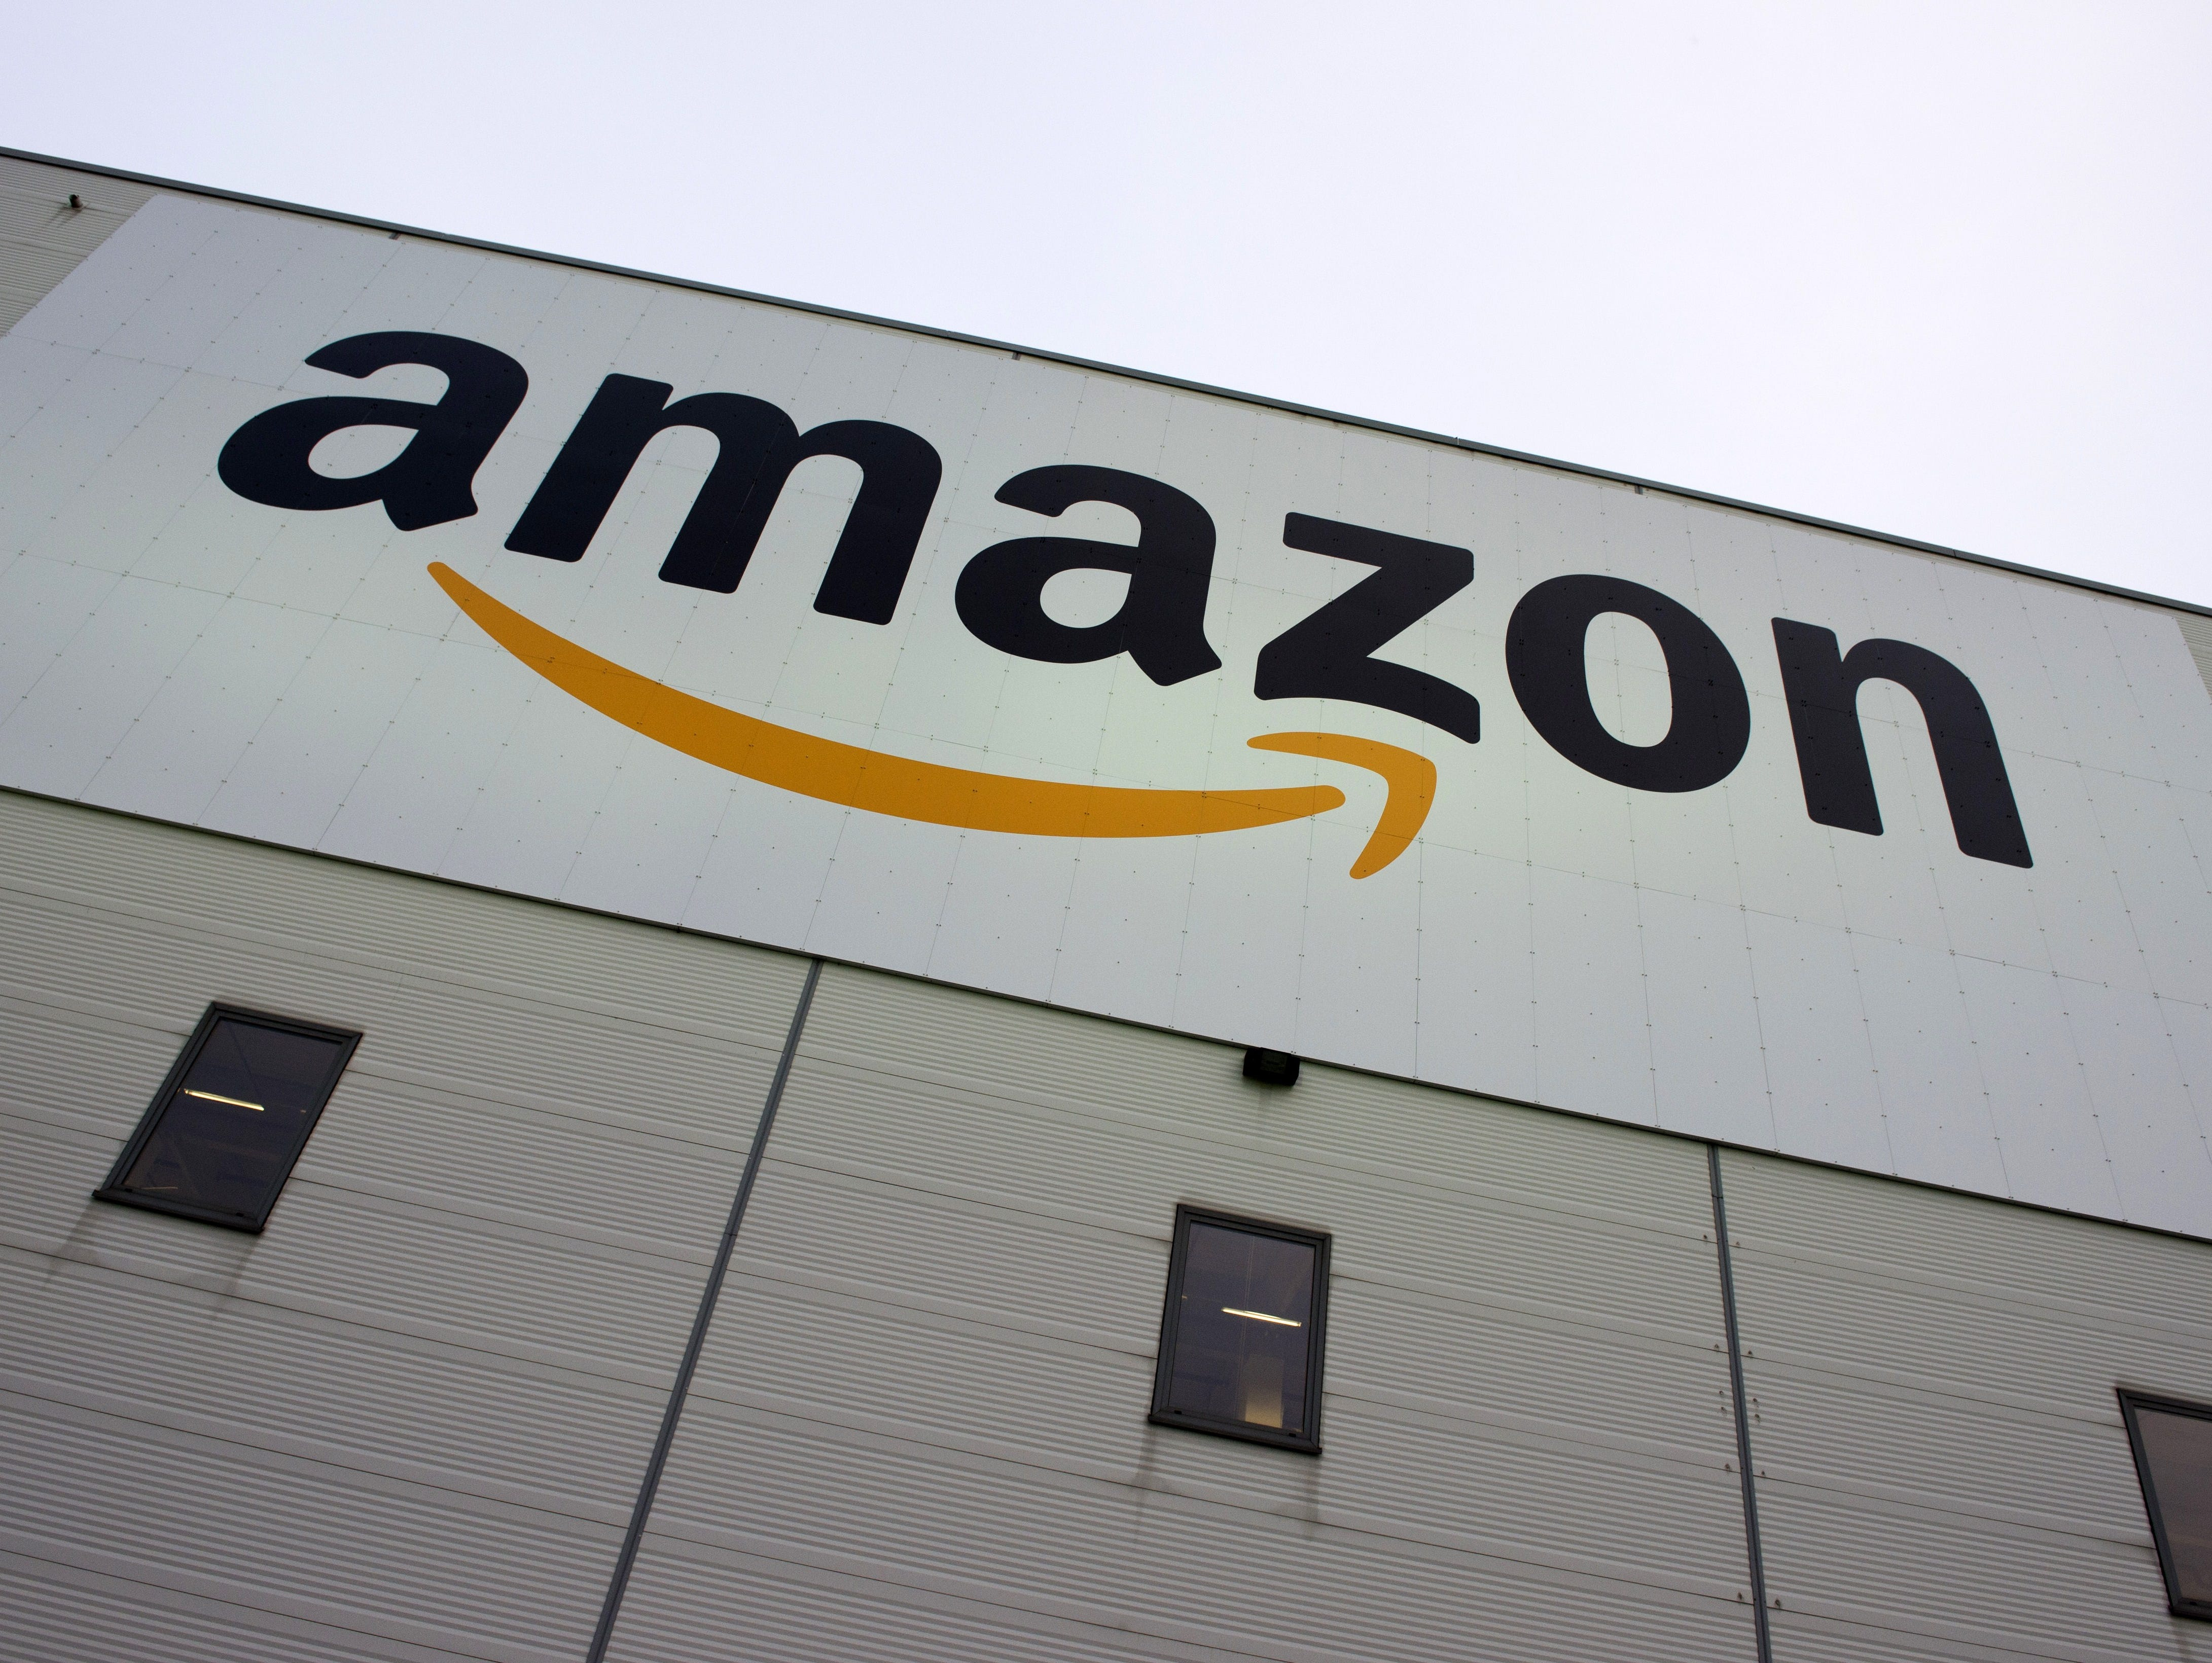 Amazon said Tuesday that it has started testing restaurant delivery for select areas of Seattle. The service is available to Amazon Prime customers.